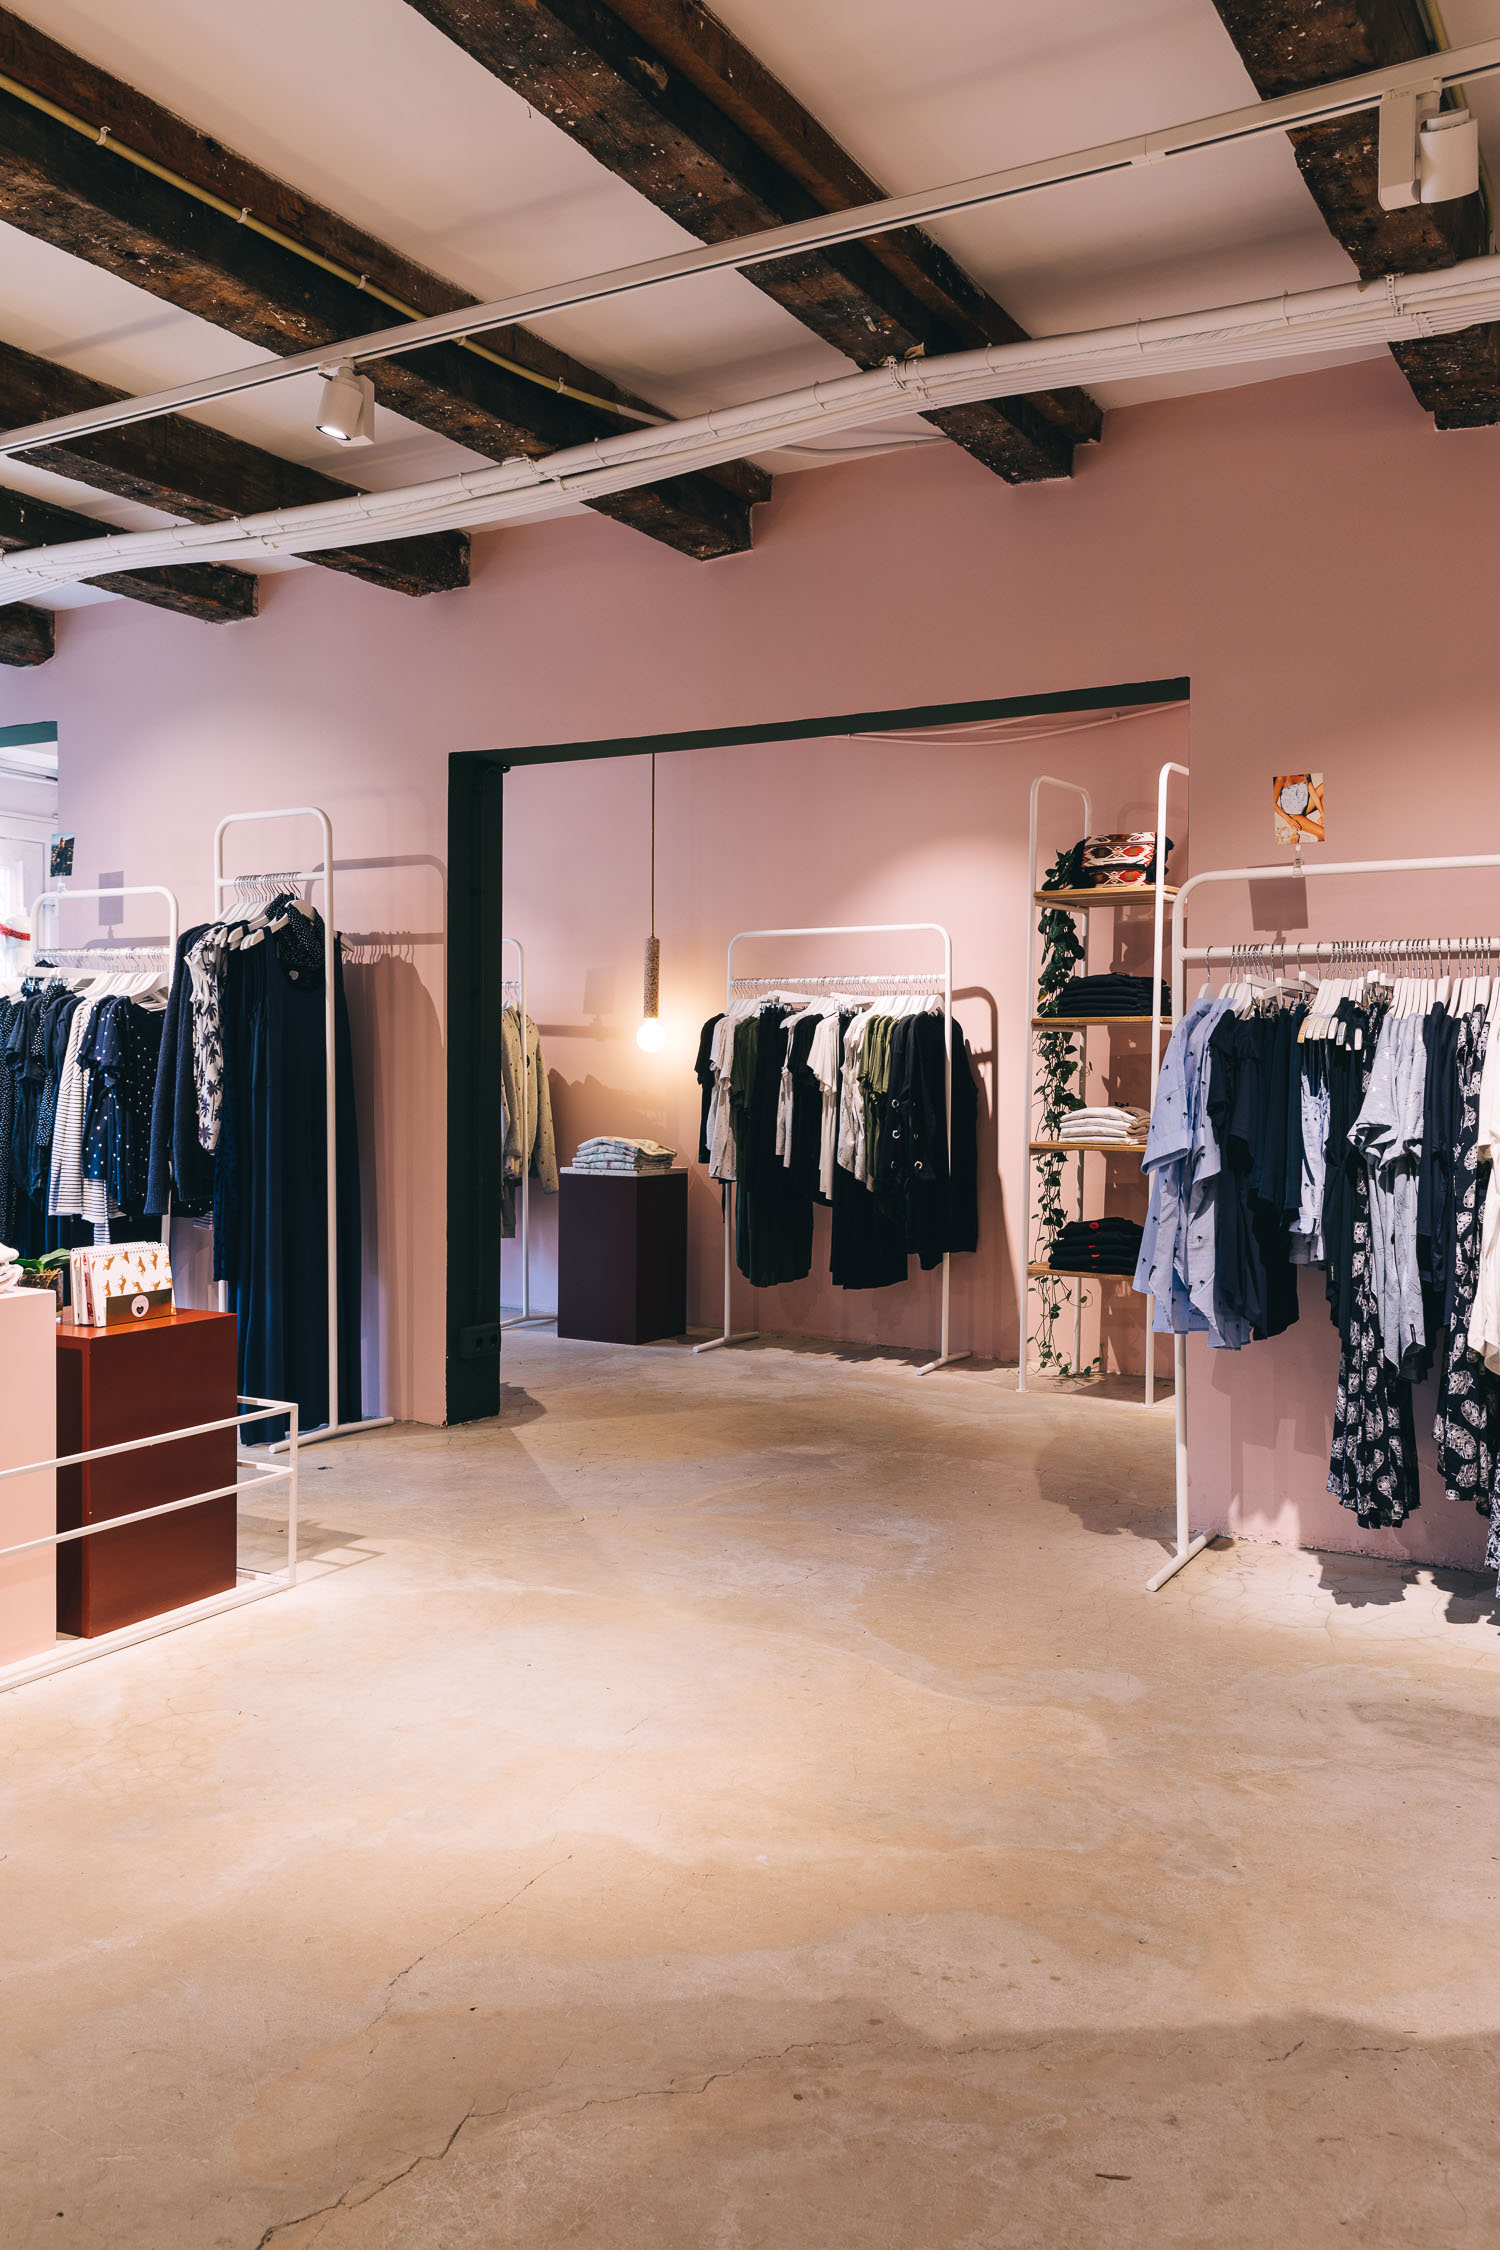 Catwalk_Junkie_Interior_store_Amsterdam_photography_by_On_a_hazy_morning001.jpg